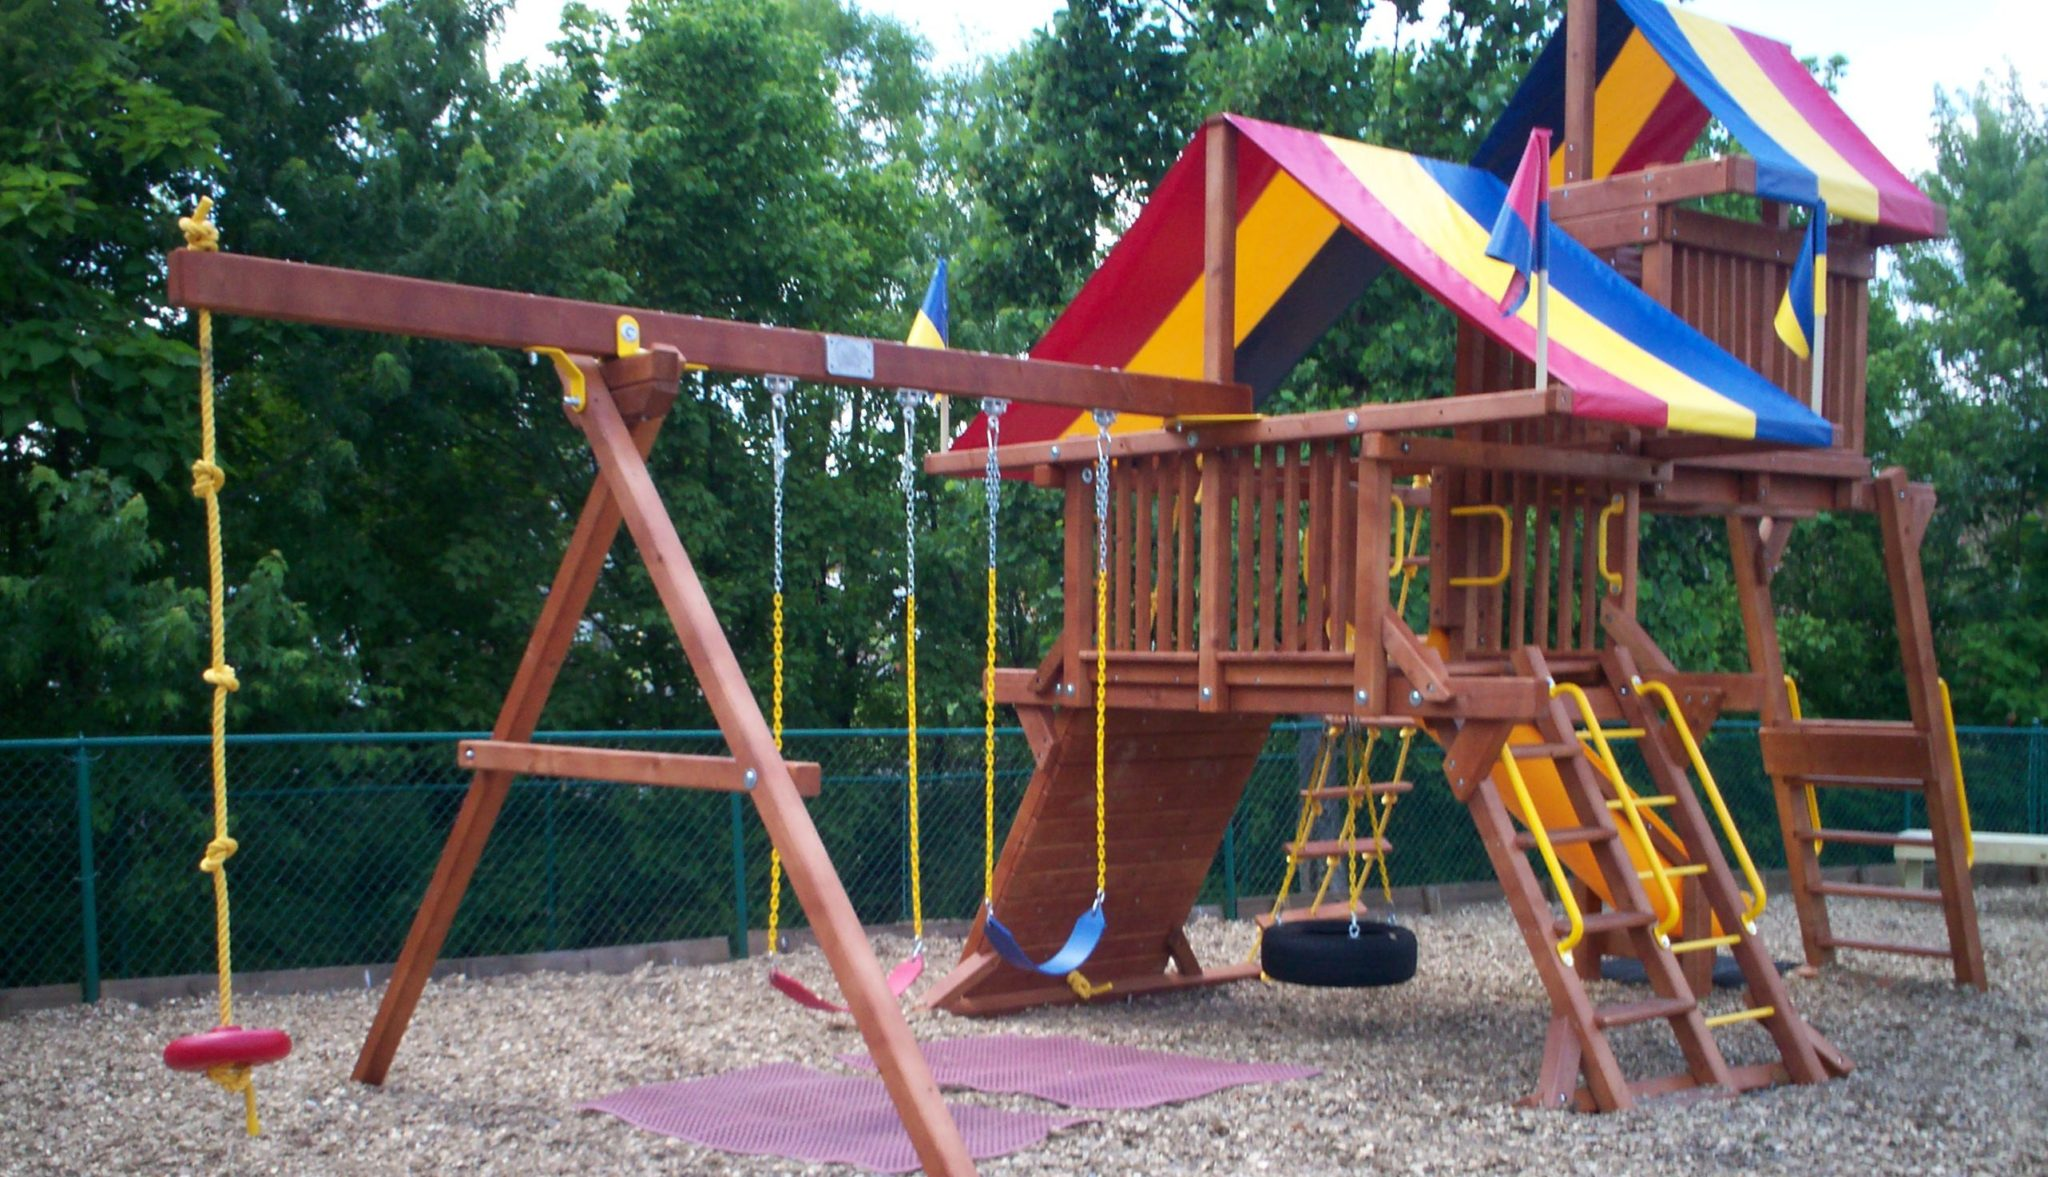 One Wilcox Place Kingsport TN playground